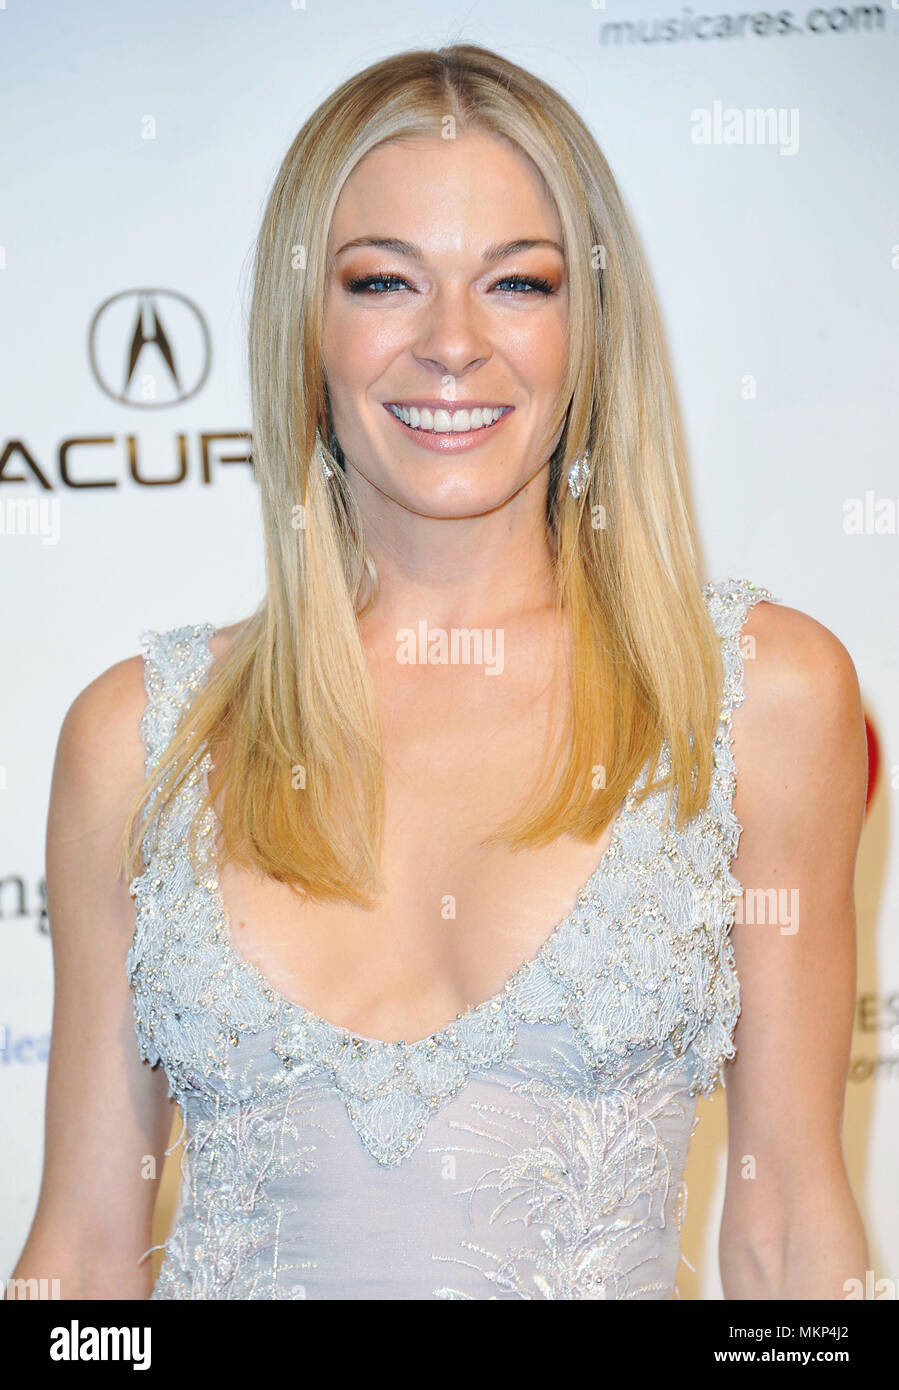 Leann Rimes nude (18 foto and video), Sexy, Paparazzi, Instagram, lingerie 2015